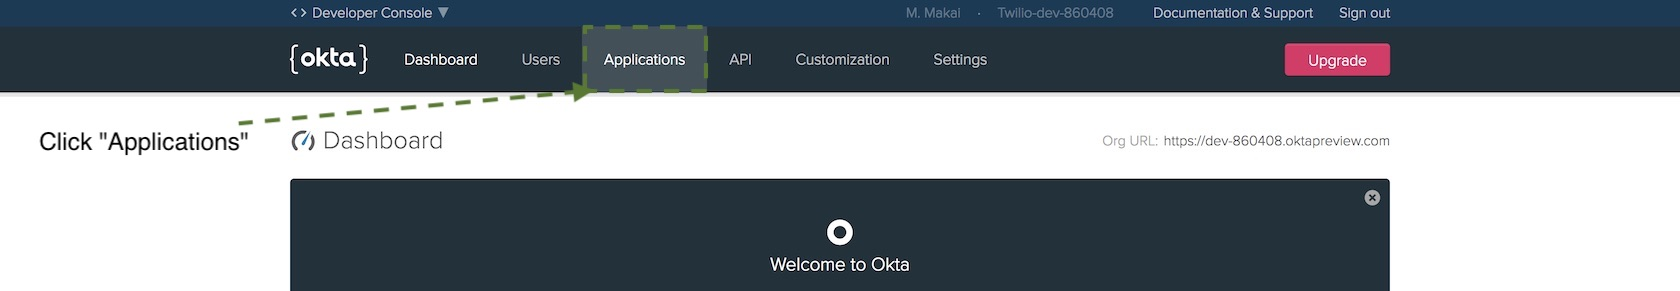 Select applications on the Okta developer dashboard.